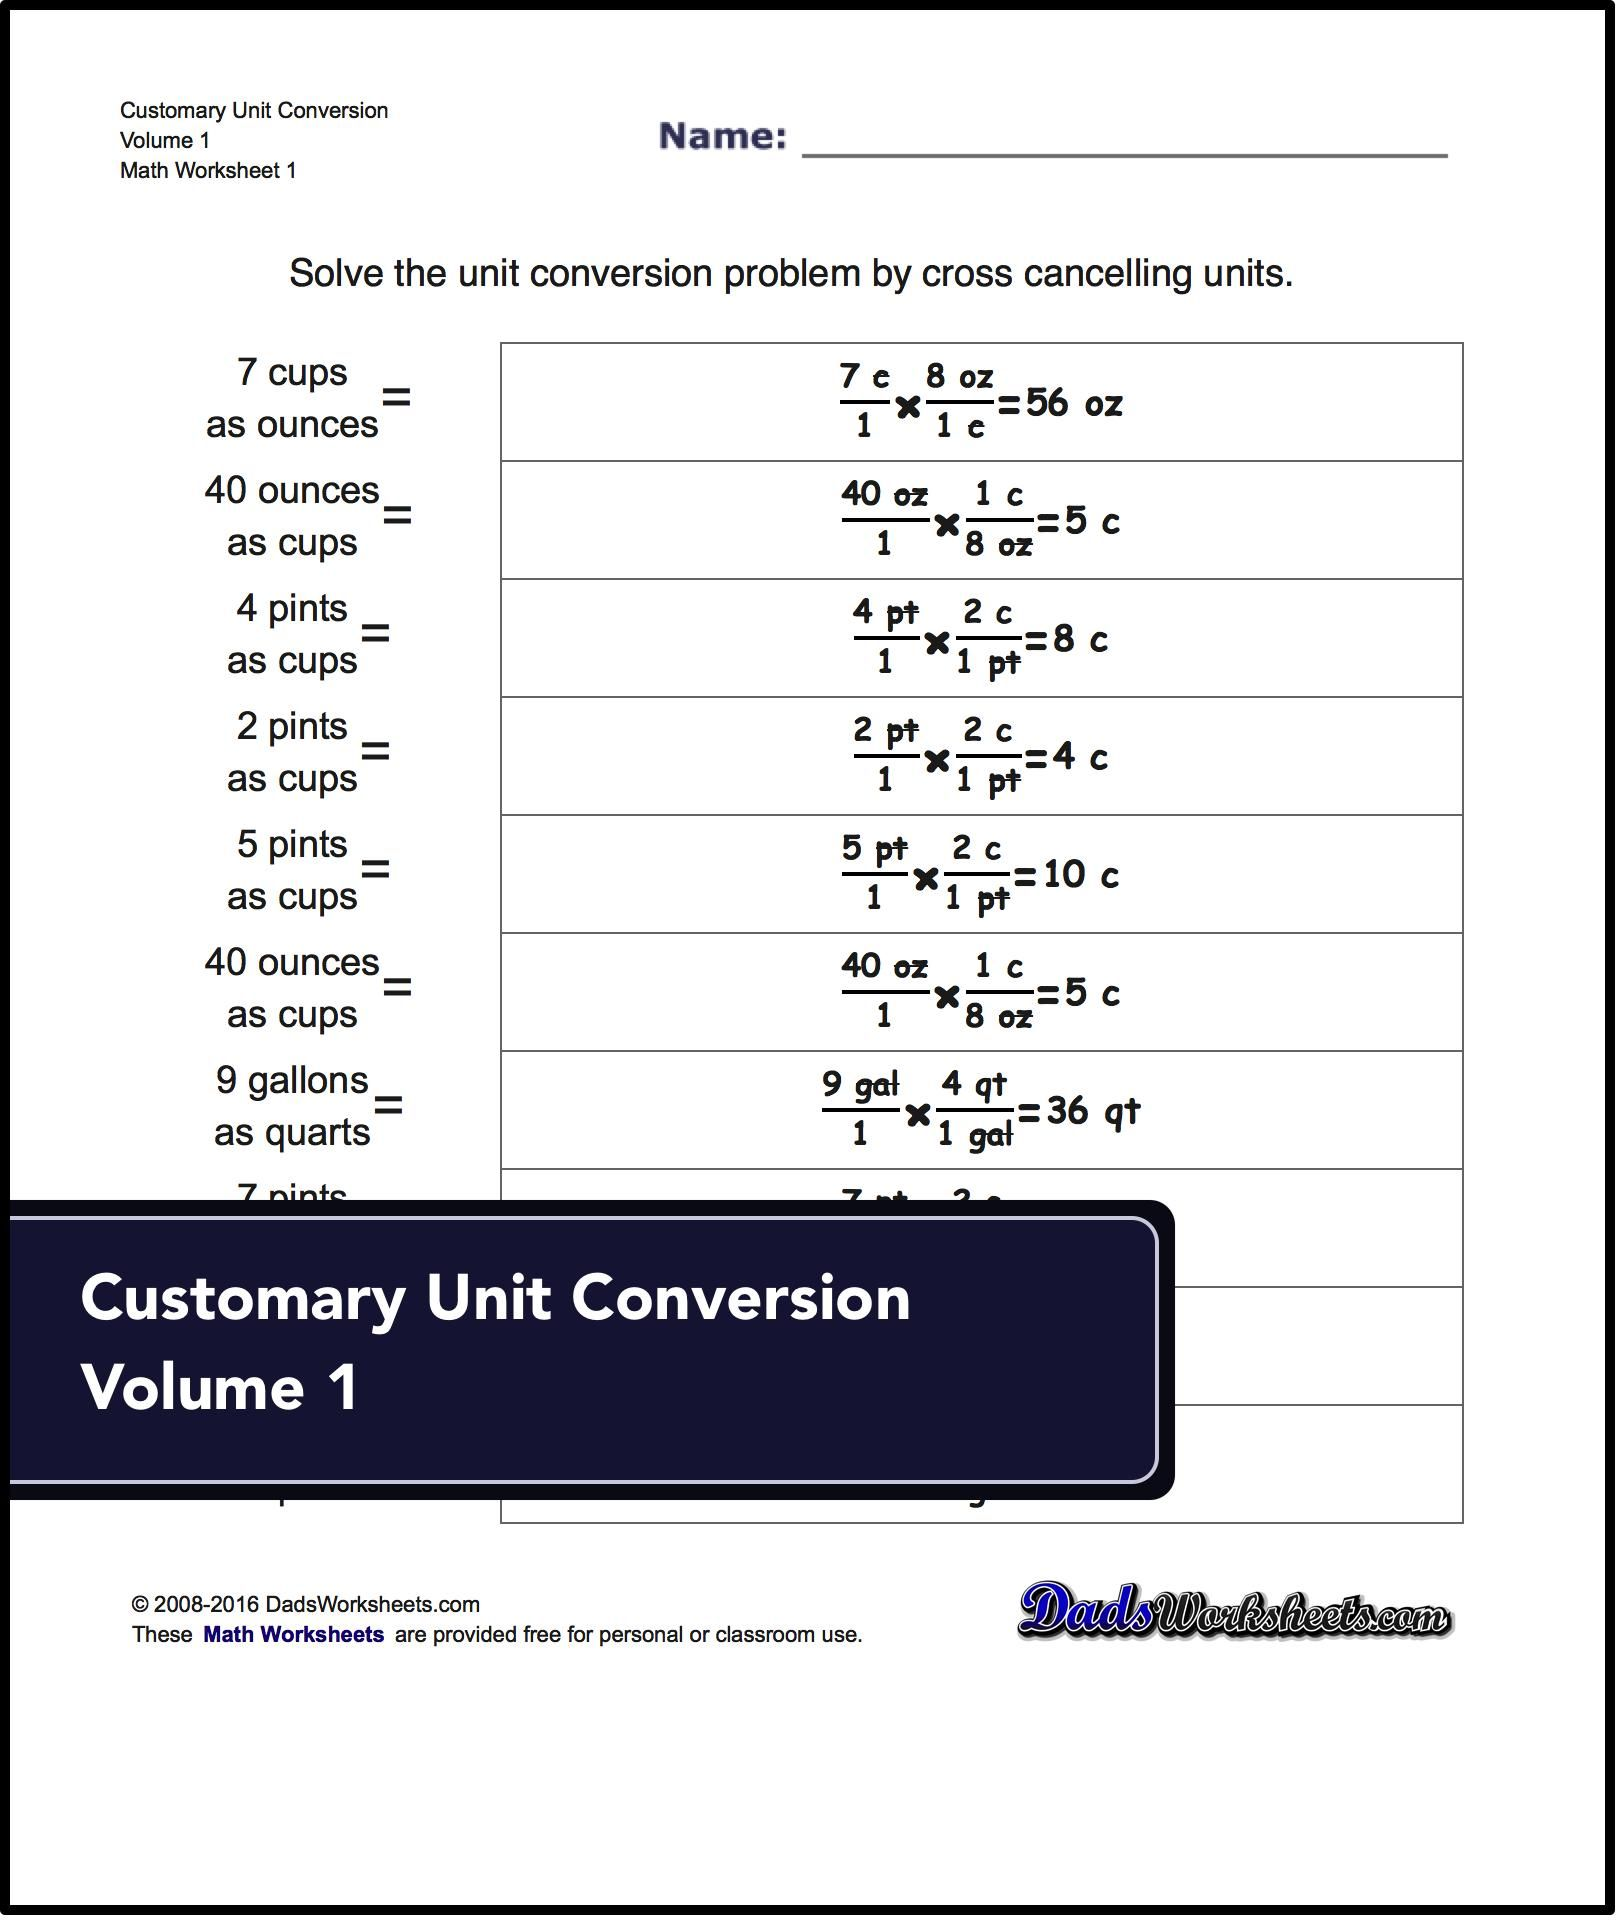 Unit Conversion Worksheets For Converting Customary Volume Units Including Ounces Pints